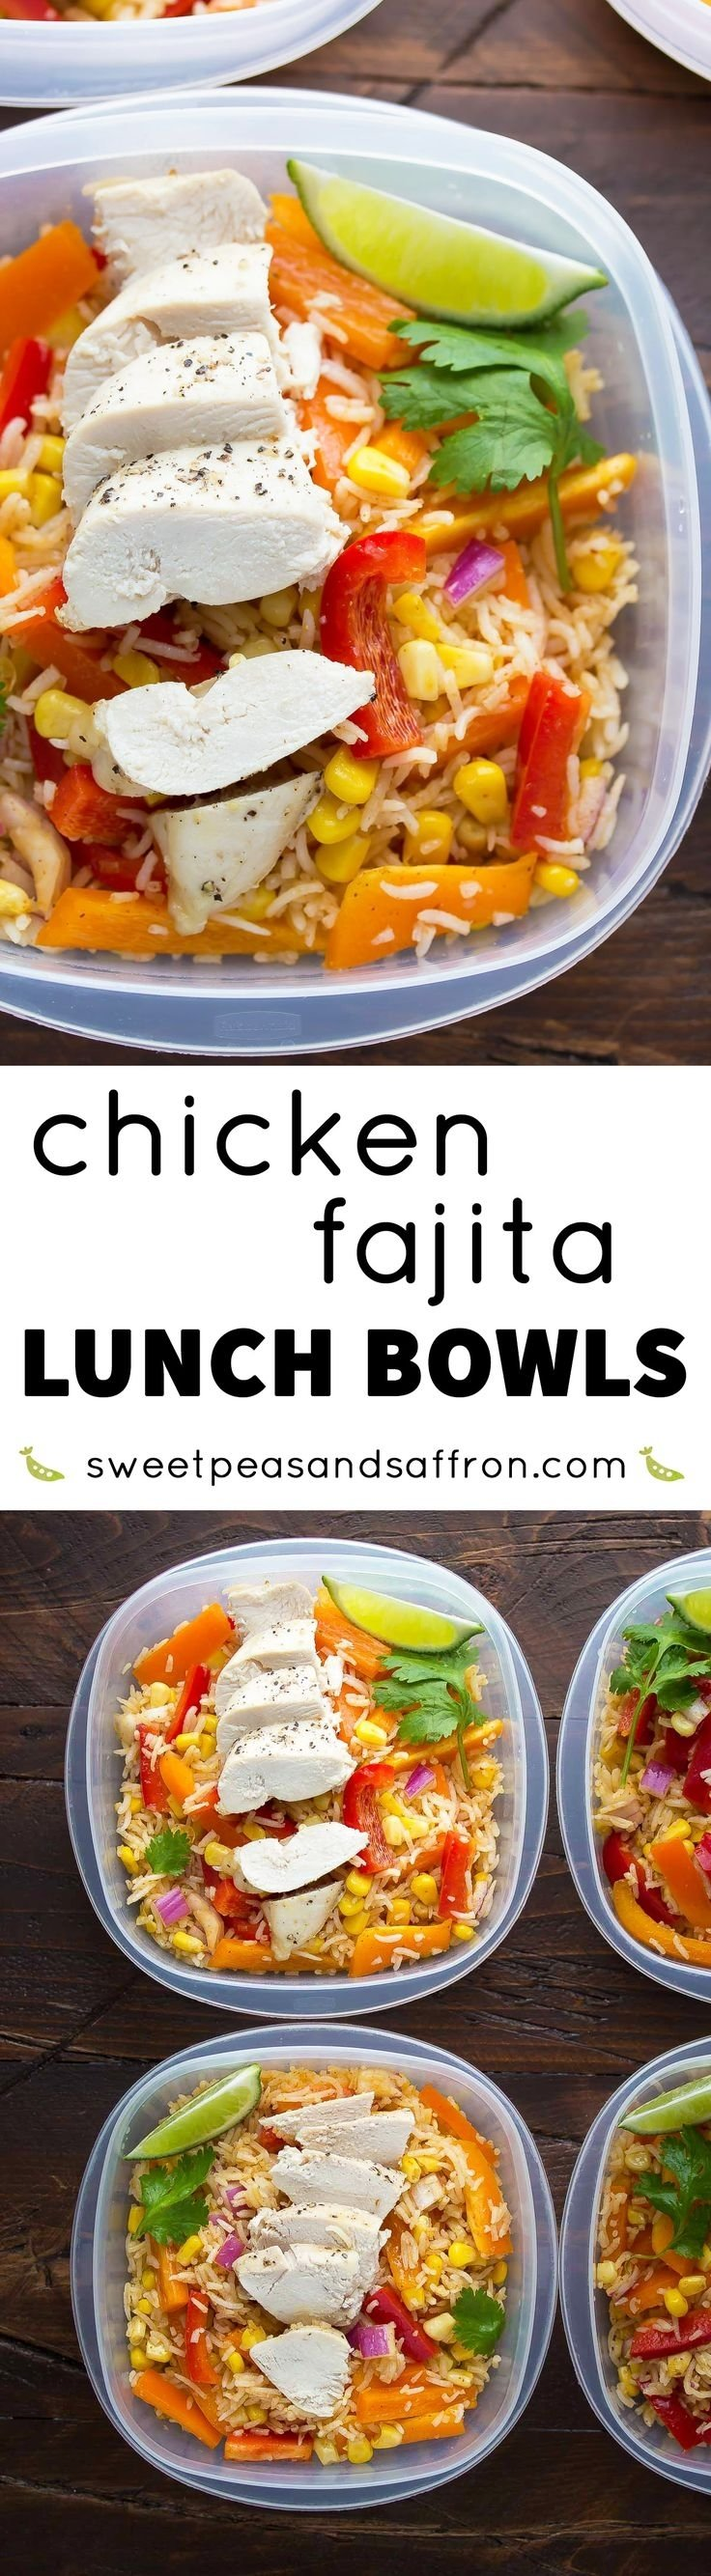 10 Perfect Light Lunch Ideas For Work 1013 best kids meal ideas images on pinterest 4 2021